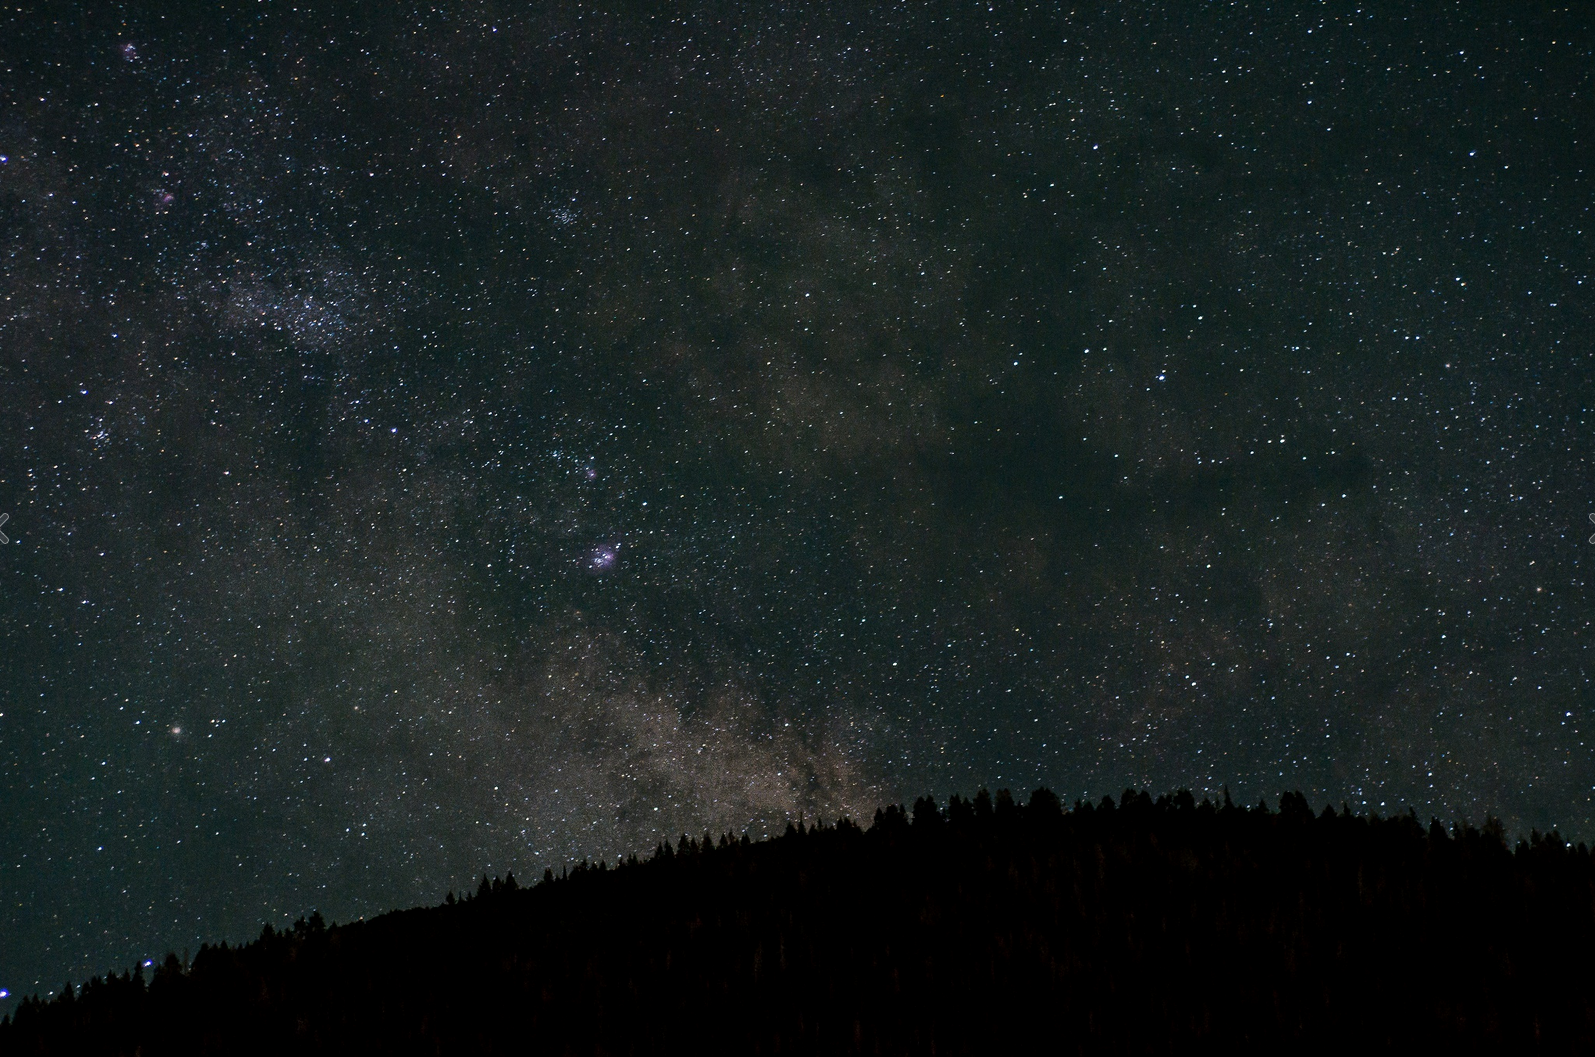 Re: Recommended Interval for Astrophoto timelapse?: Astrophotography